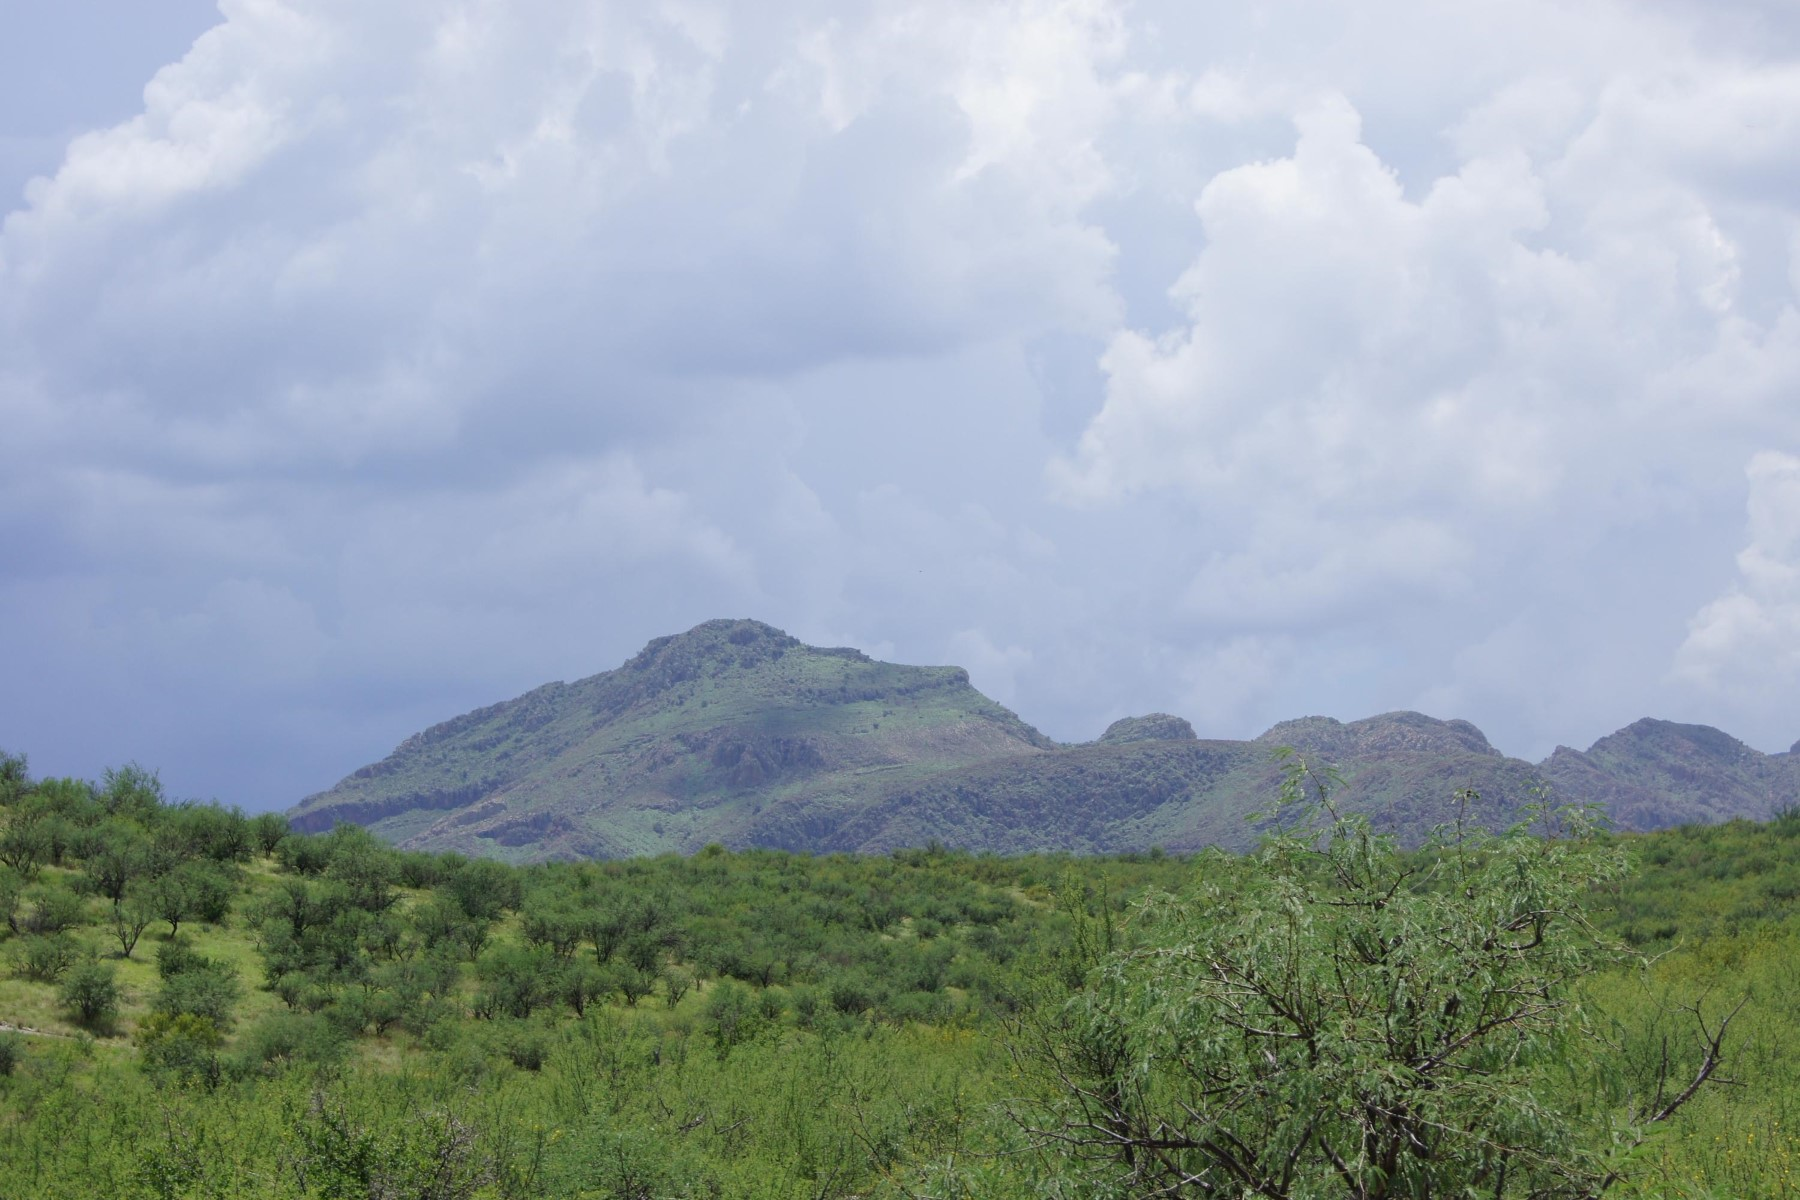 Land for Sale at Beautiful panoramic views from this 4.35 acre parce Parcel 4 Vista de Torres 4 Tubac, Arizona, 85646 United States